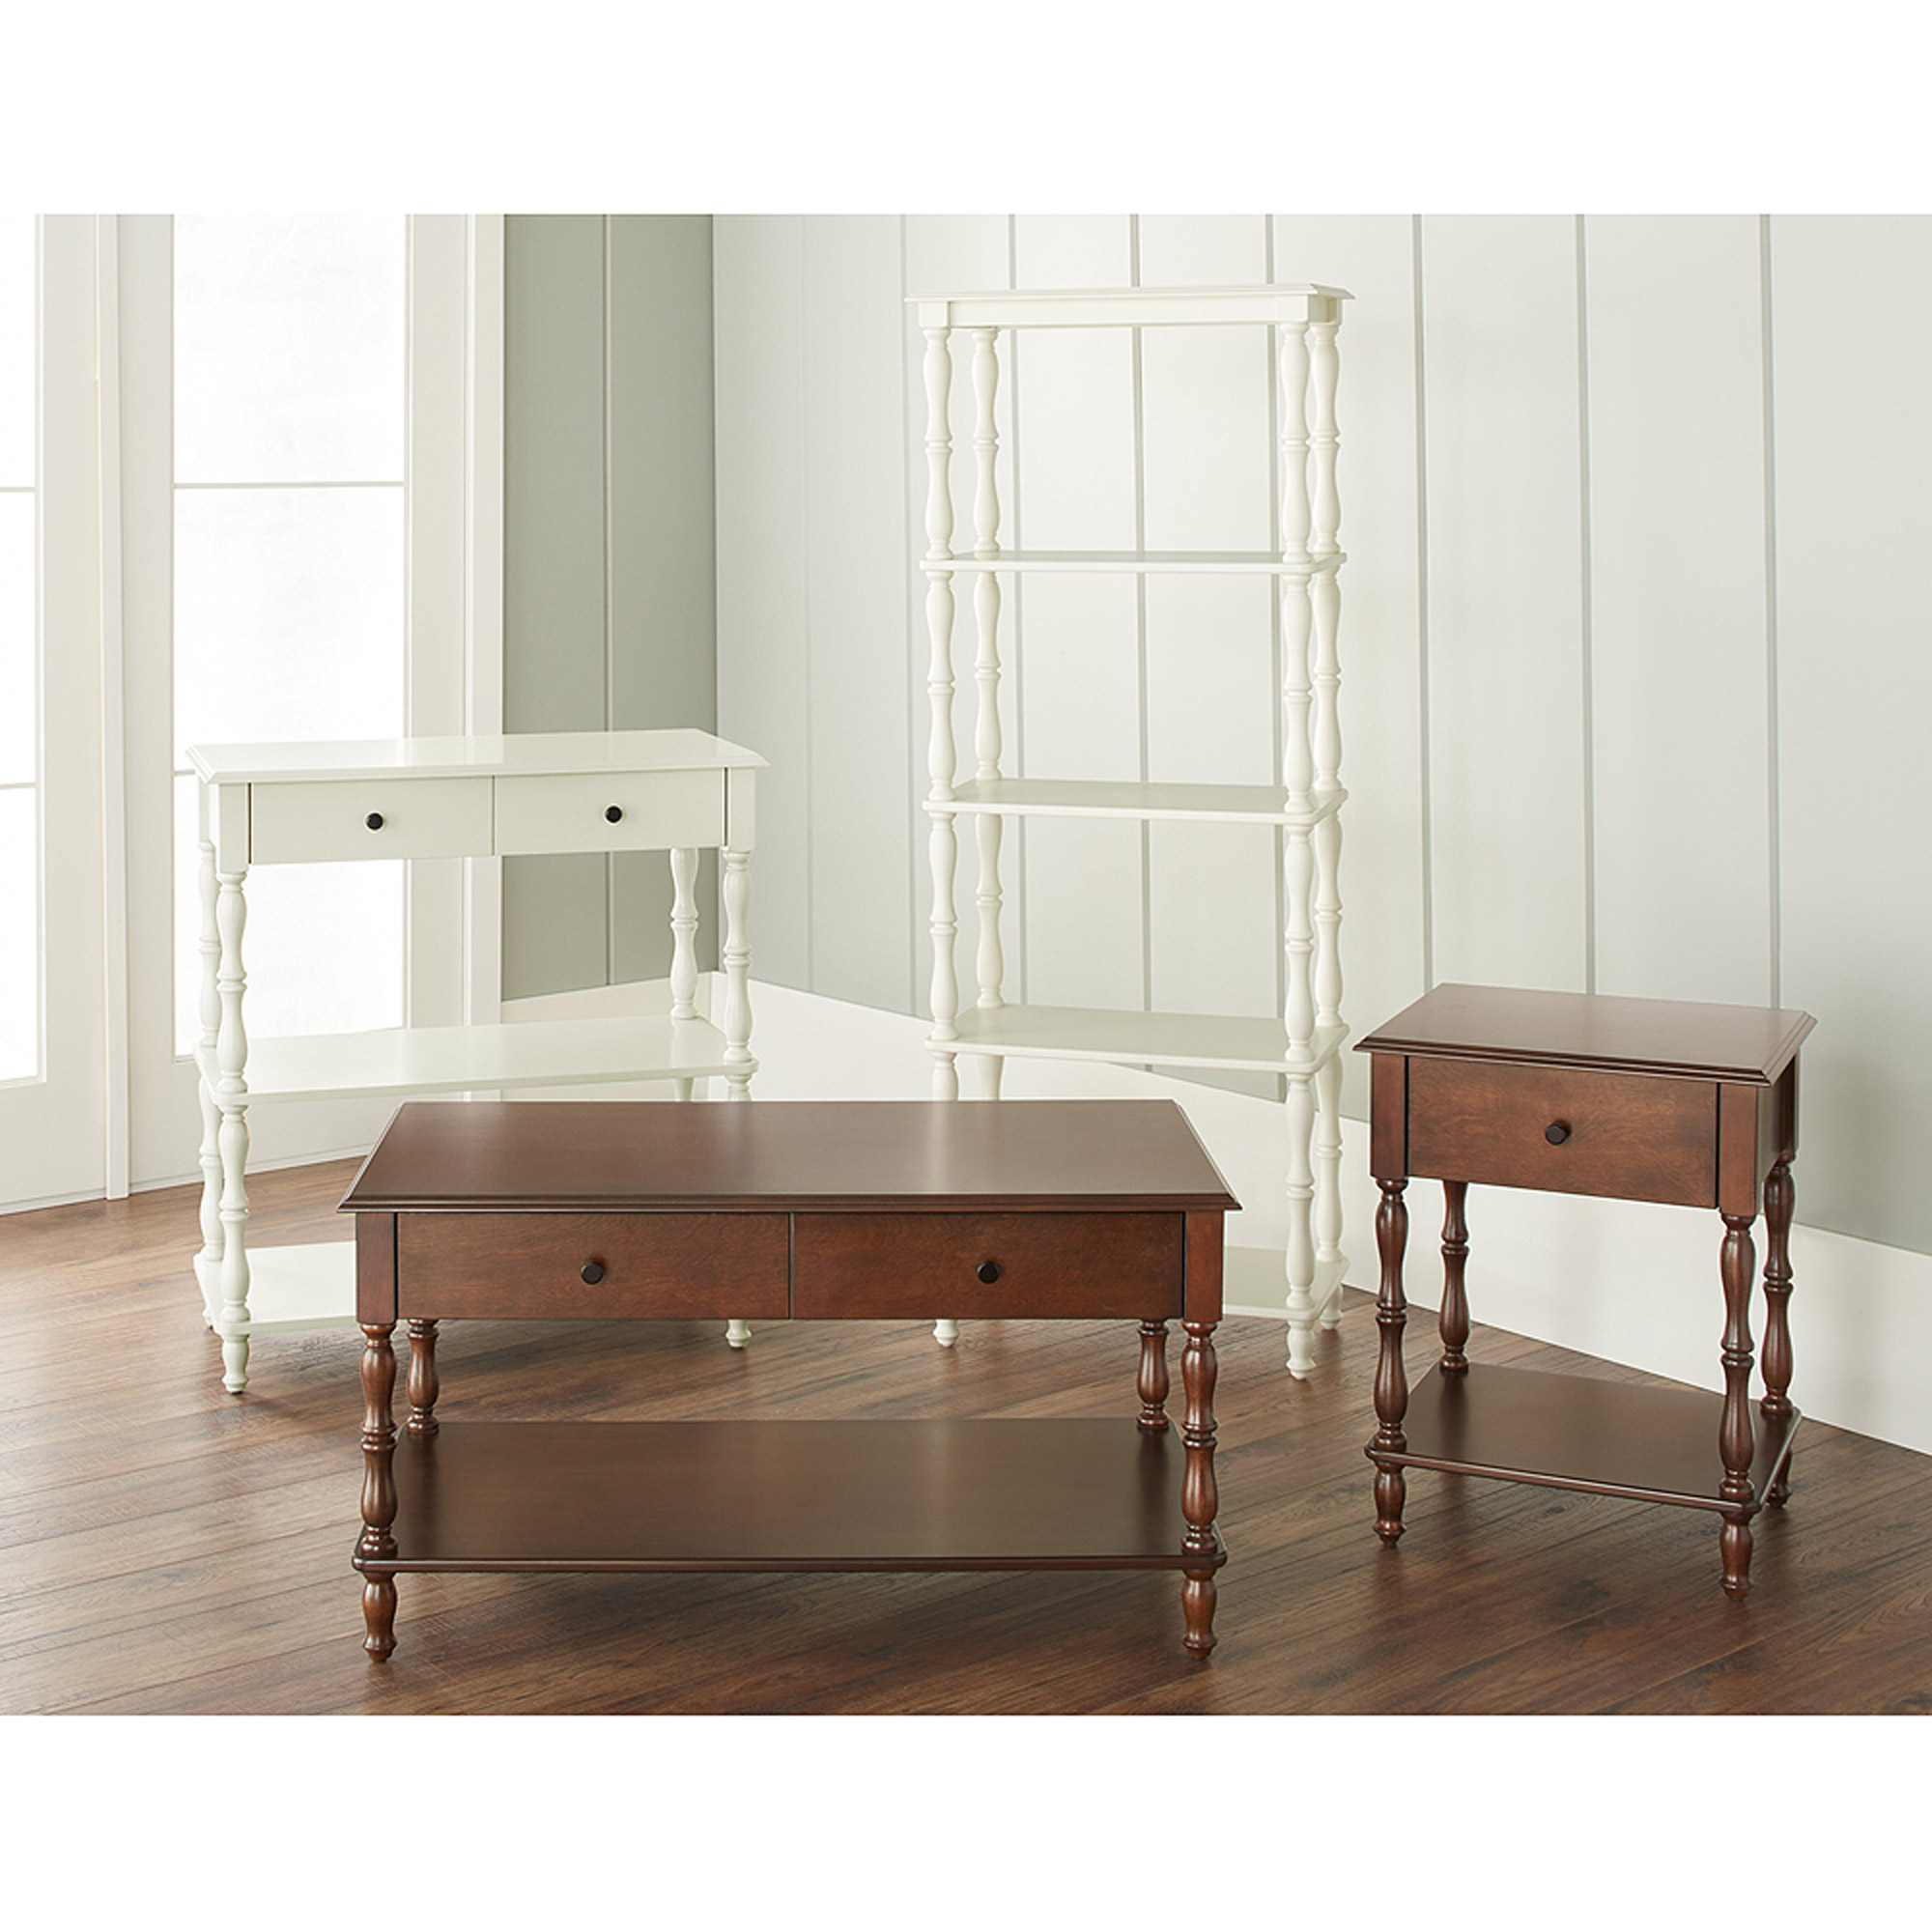 10 Spring Street Marianna Furniture Collection